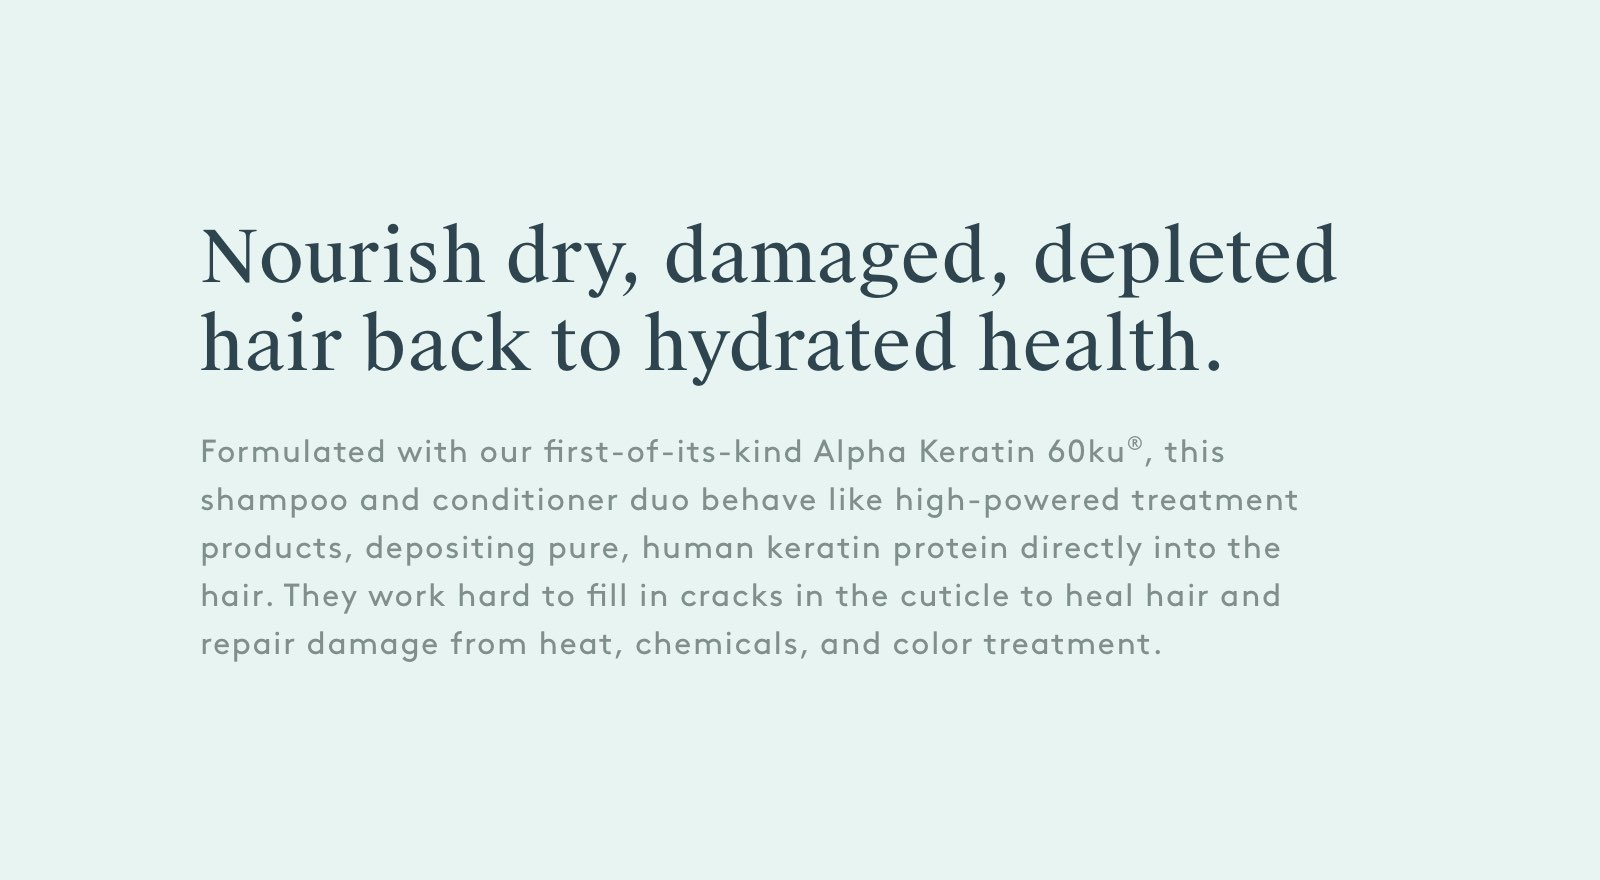 Nourish dry, damage, depleted hair back to hydrated health.